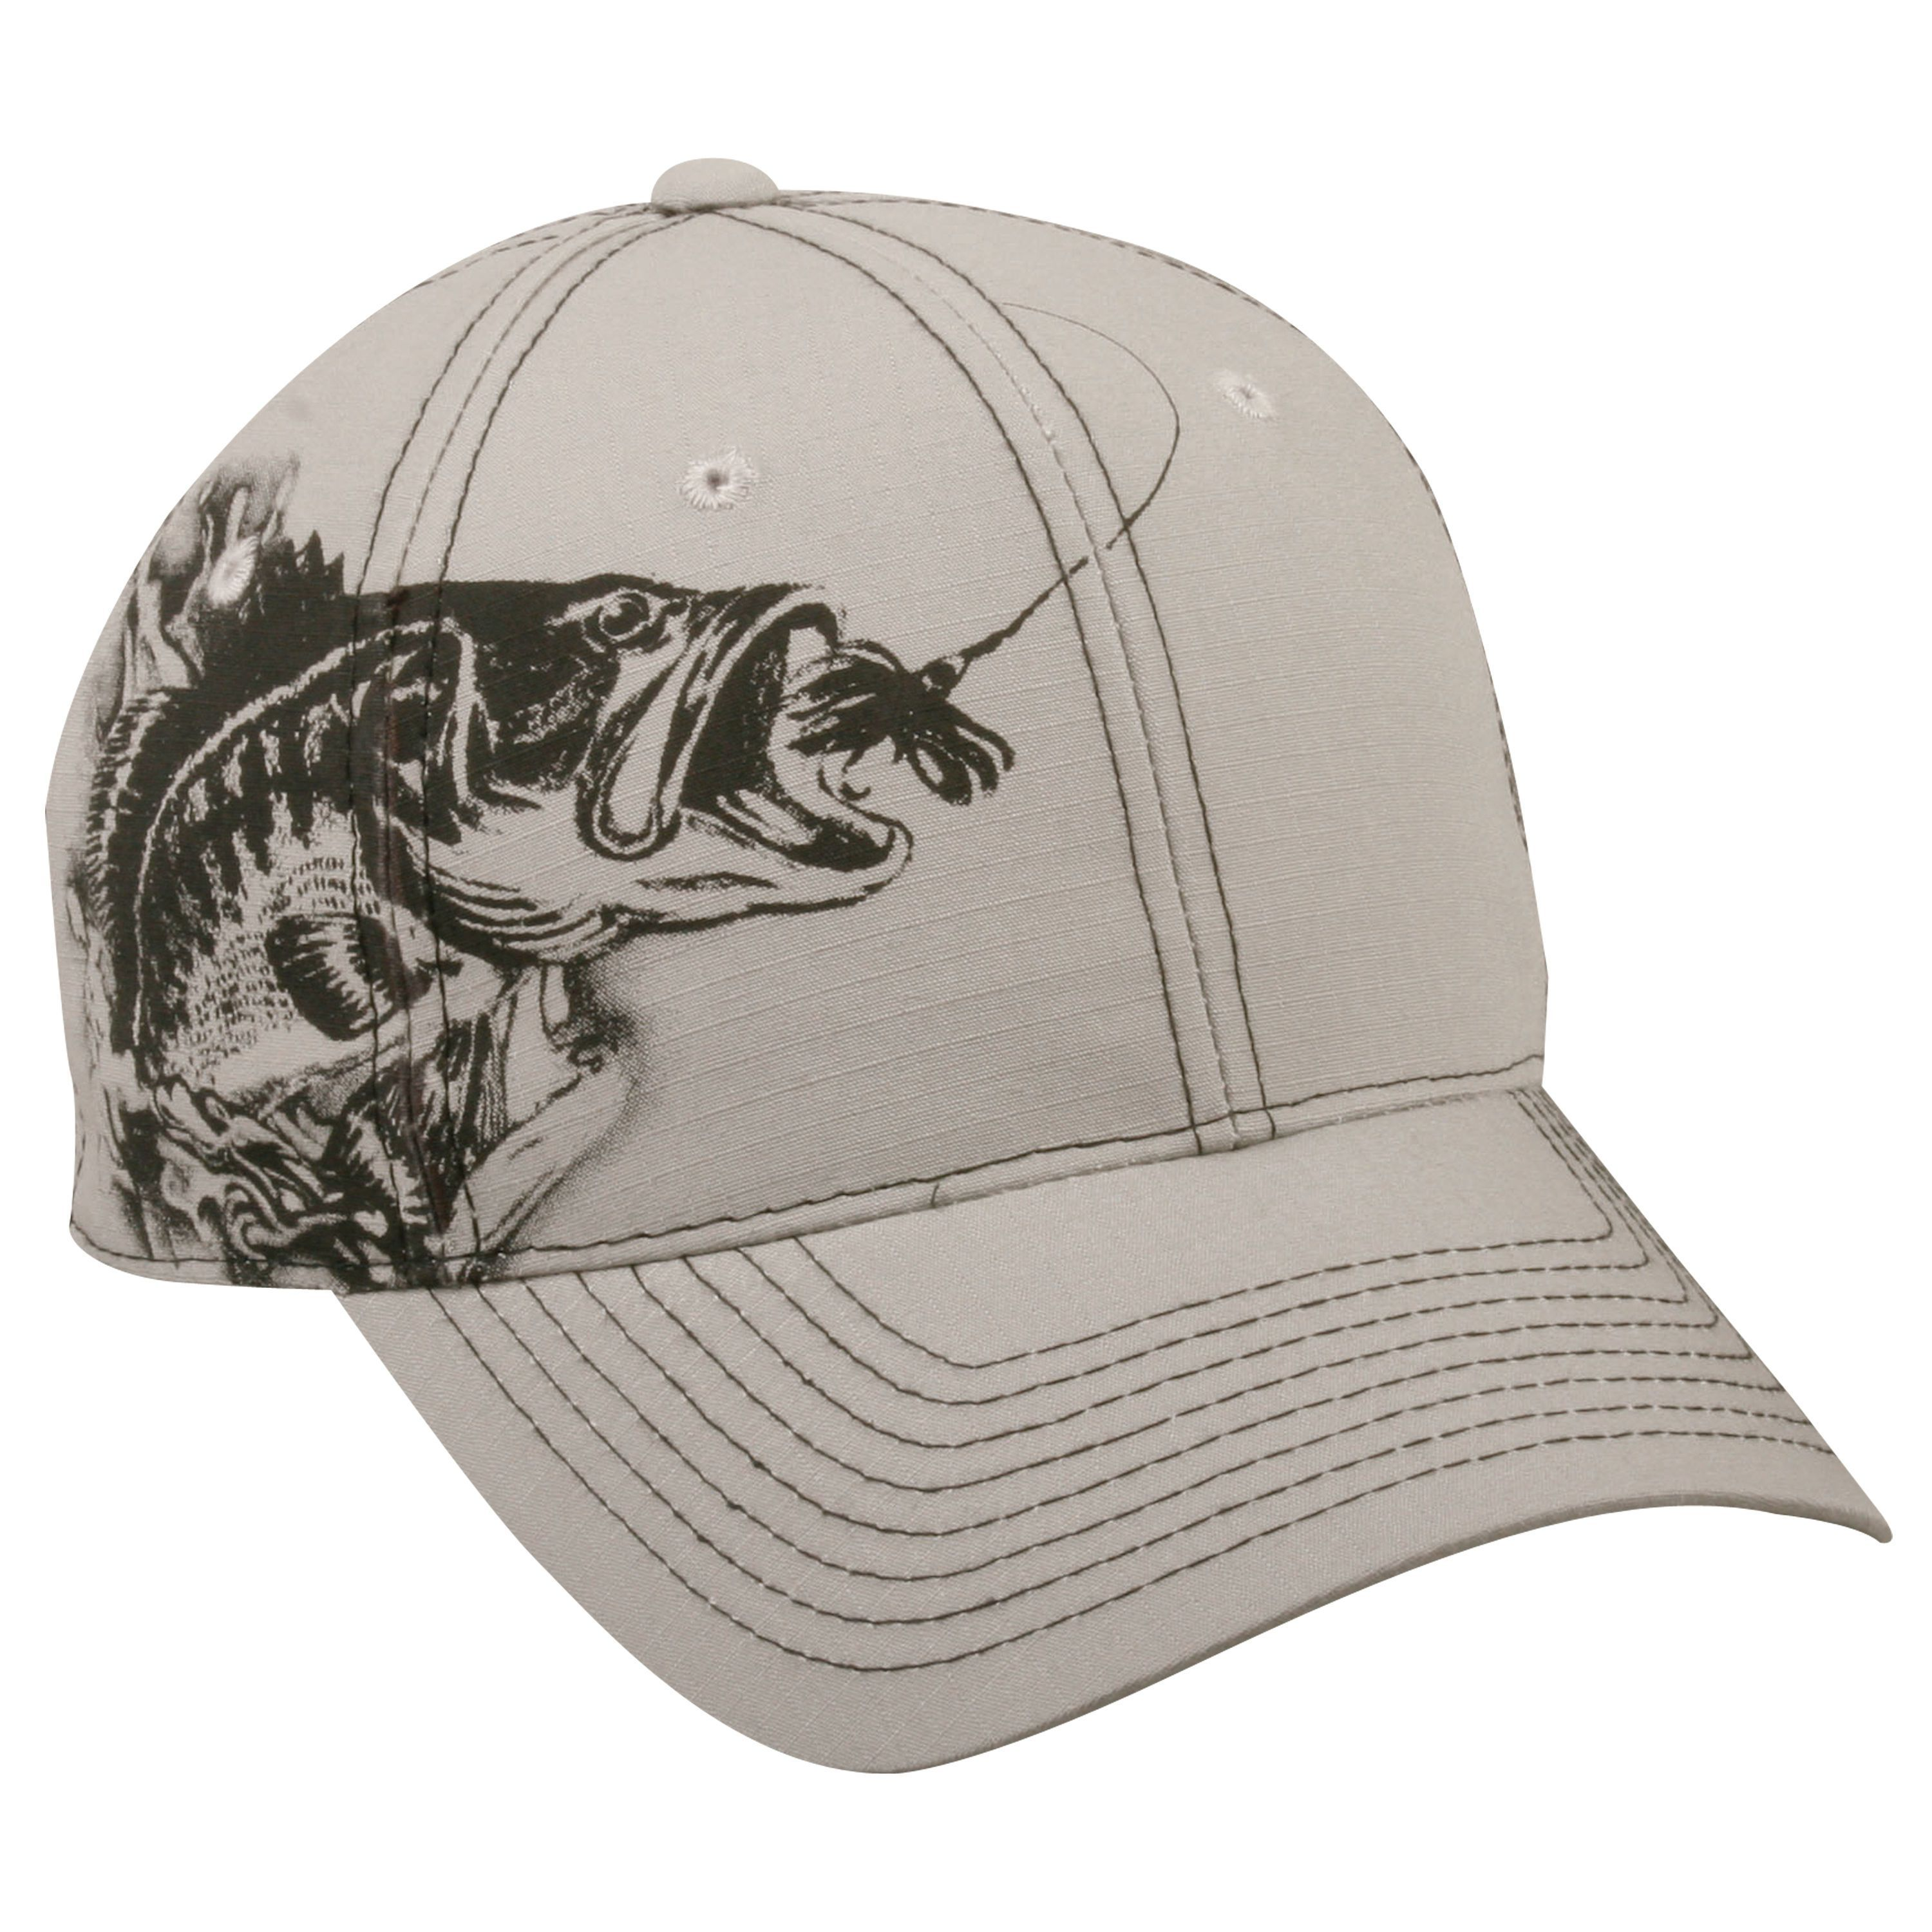 555c4a6cd9f6c Outdoor Cap Jumping Bass Adjustable Fishing Hat